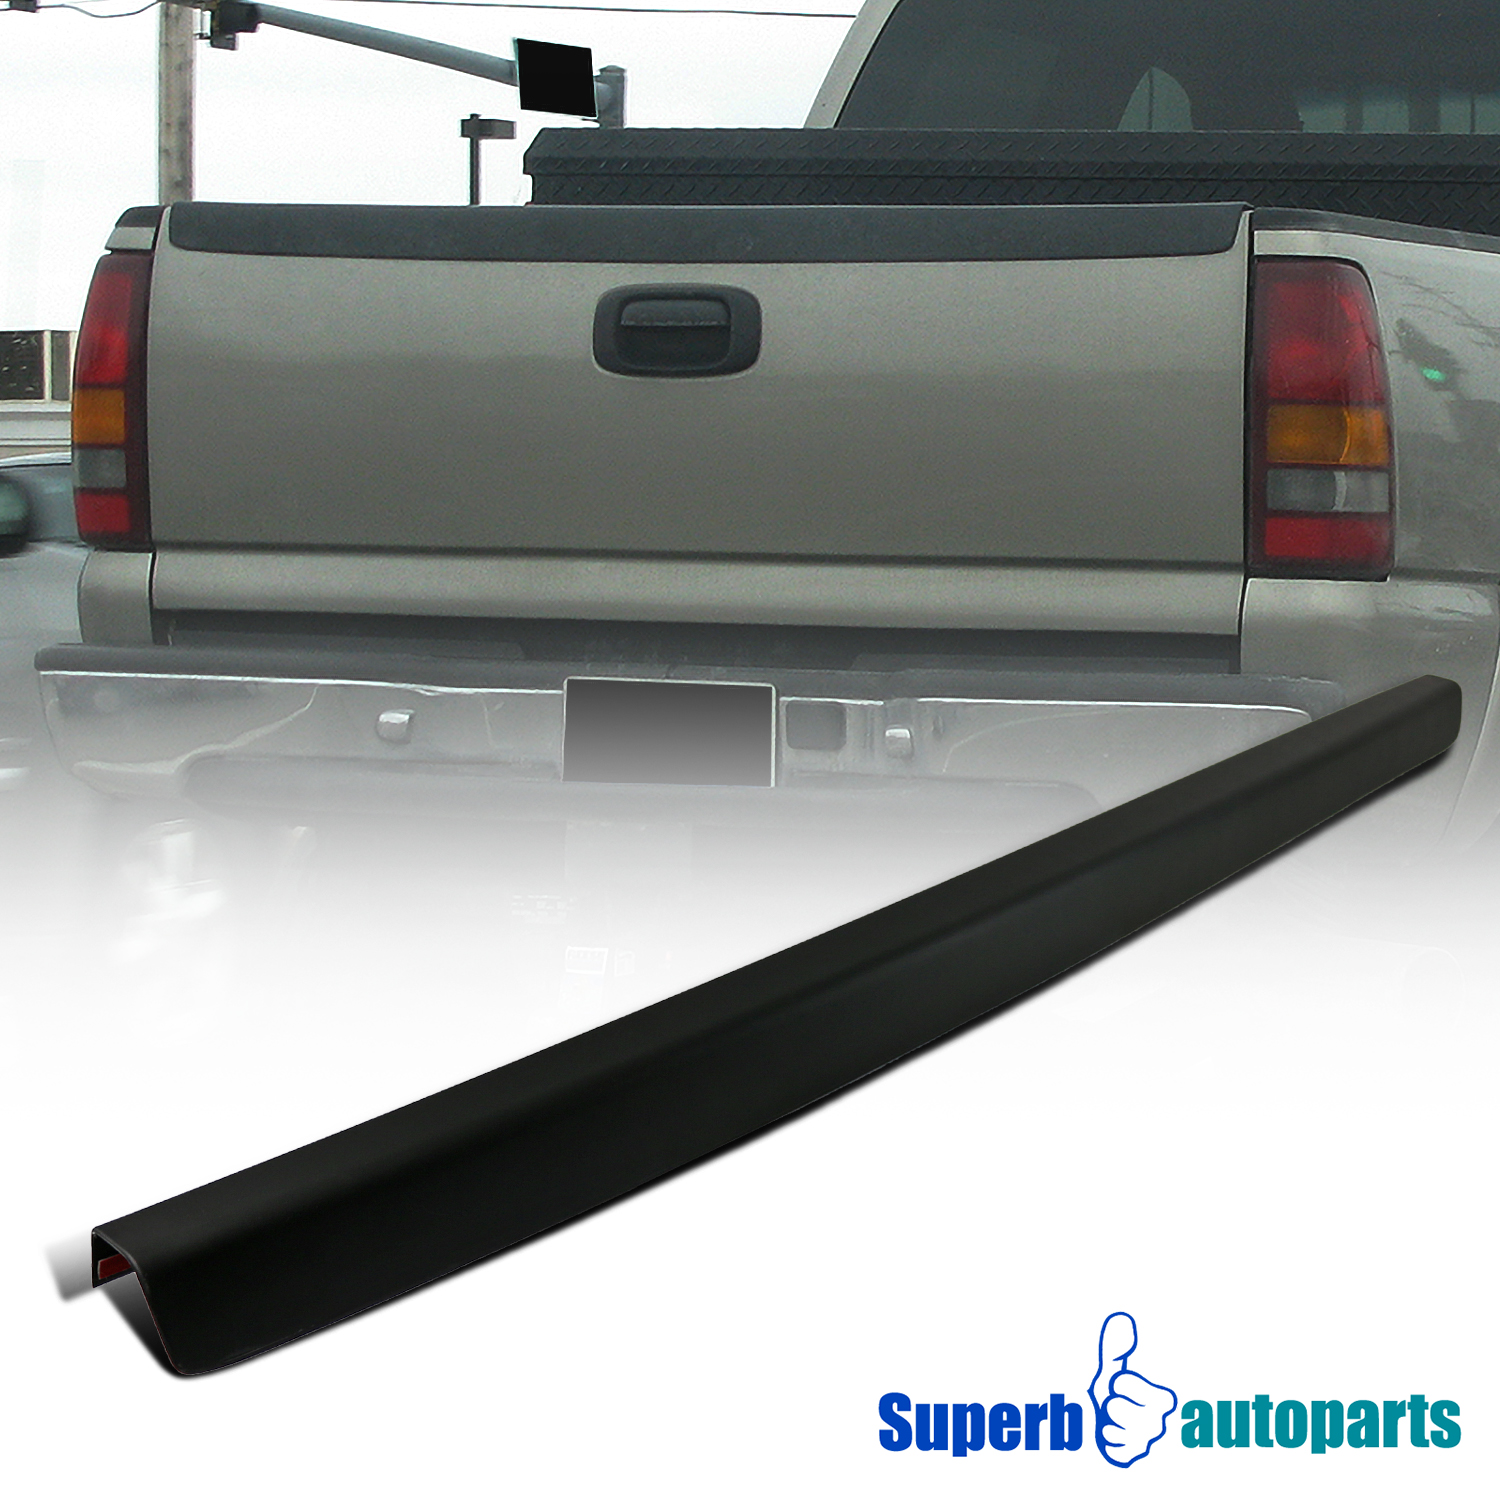 1999 2007 chevy silverado sl tailgate protector cap high quality abs black. Black Bedroom Furniture Sets. Home Design Ideas